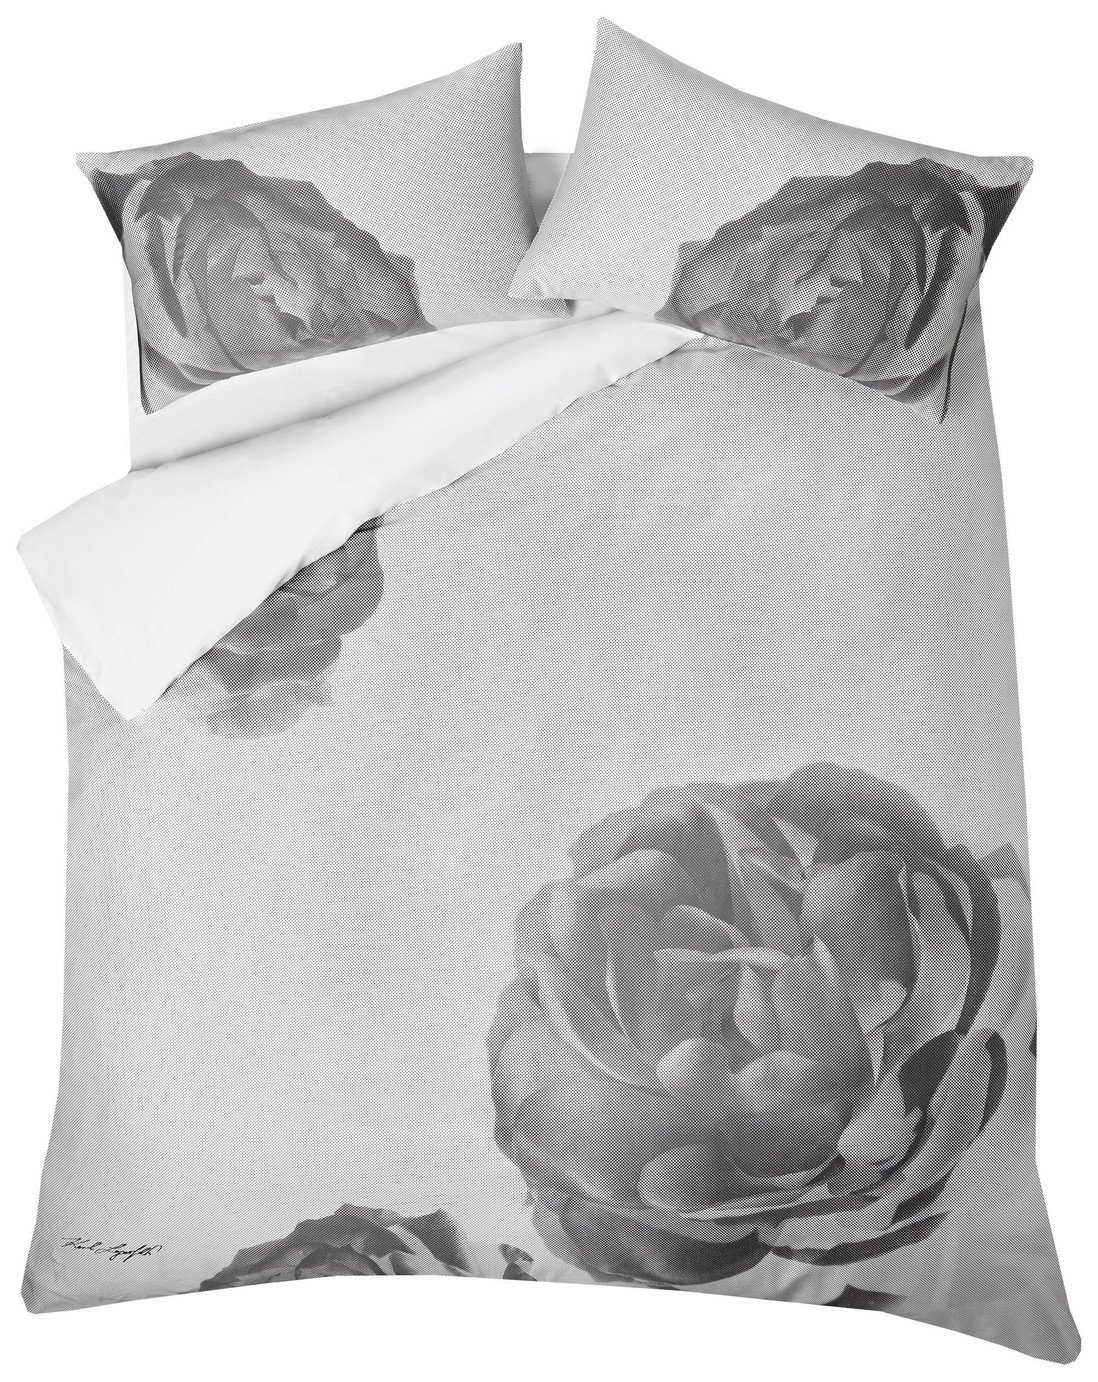 Karl Lagerfeld Pixel Rose Grey Bedding Set - Kingsize